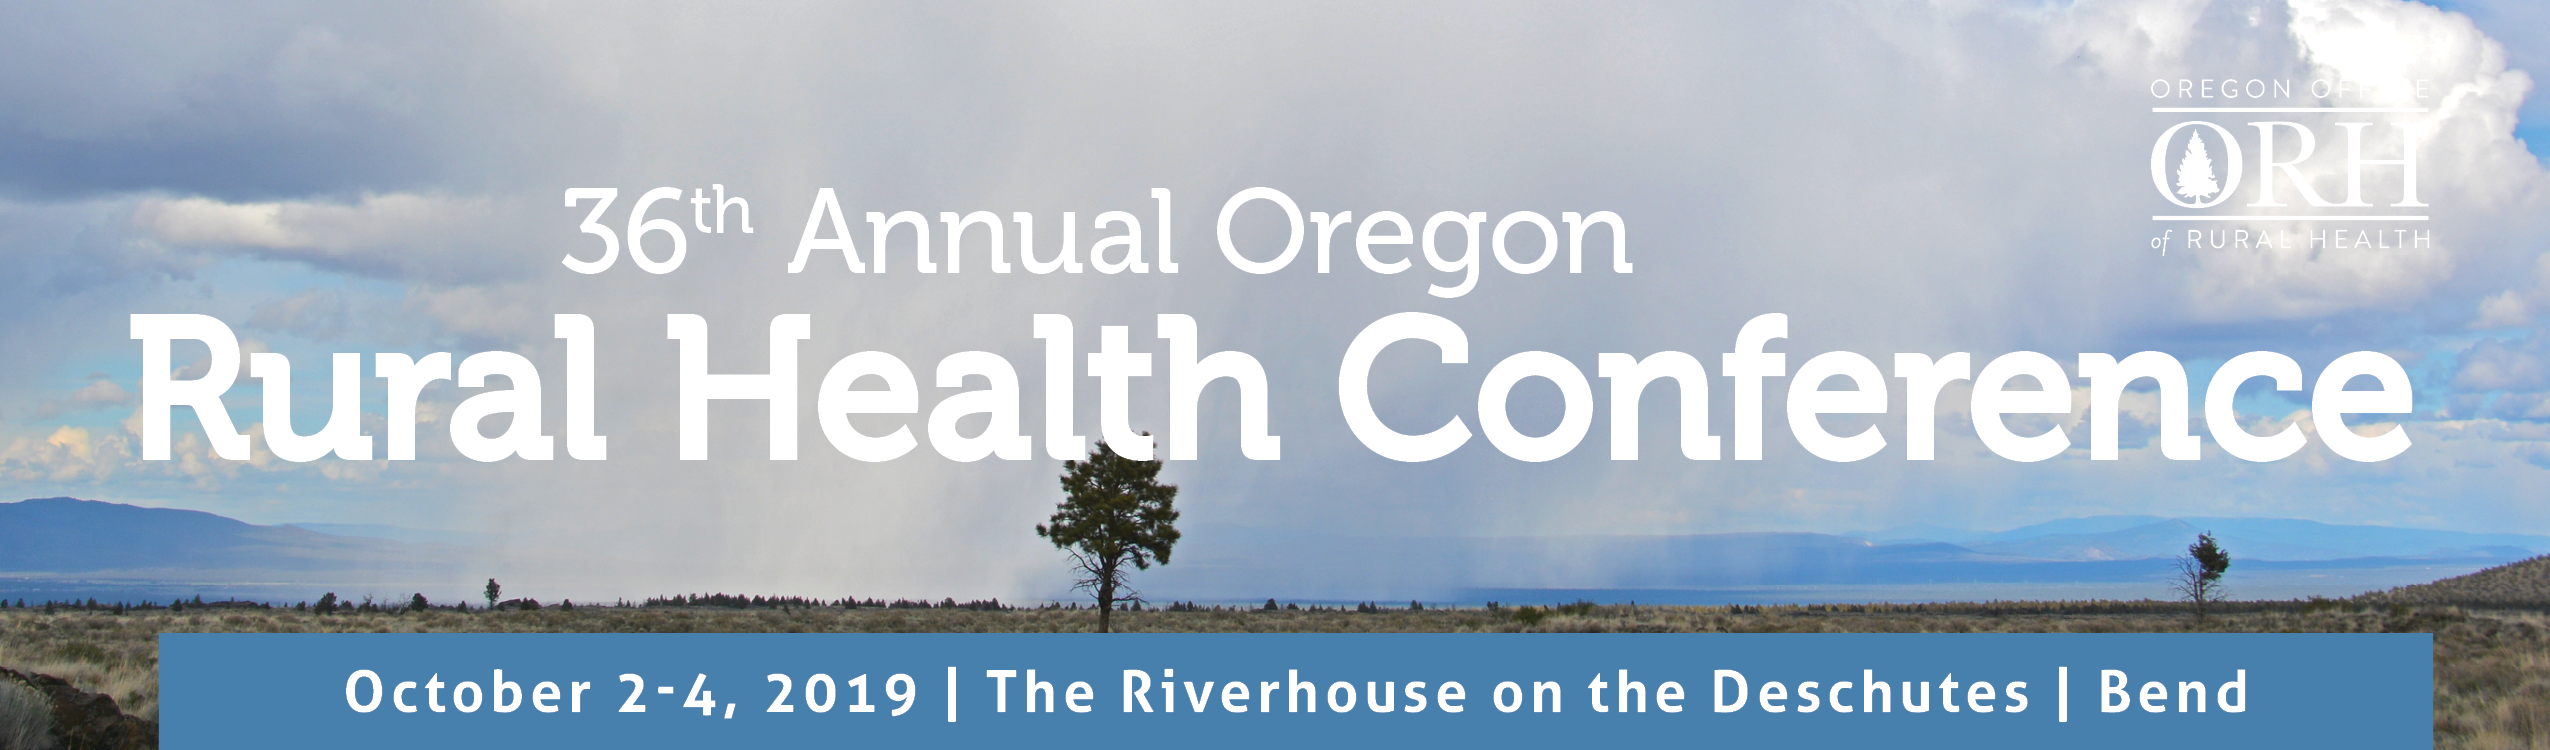 36th Annual Oregon Rural Health Conference